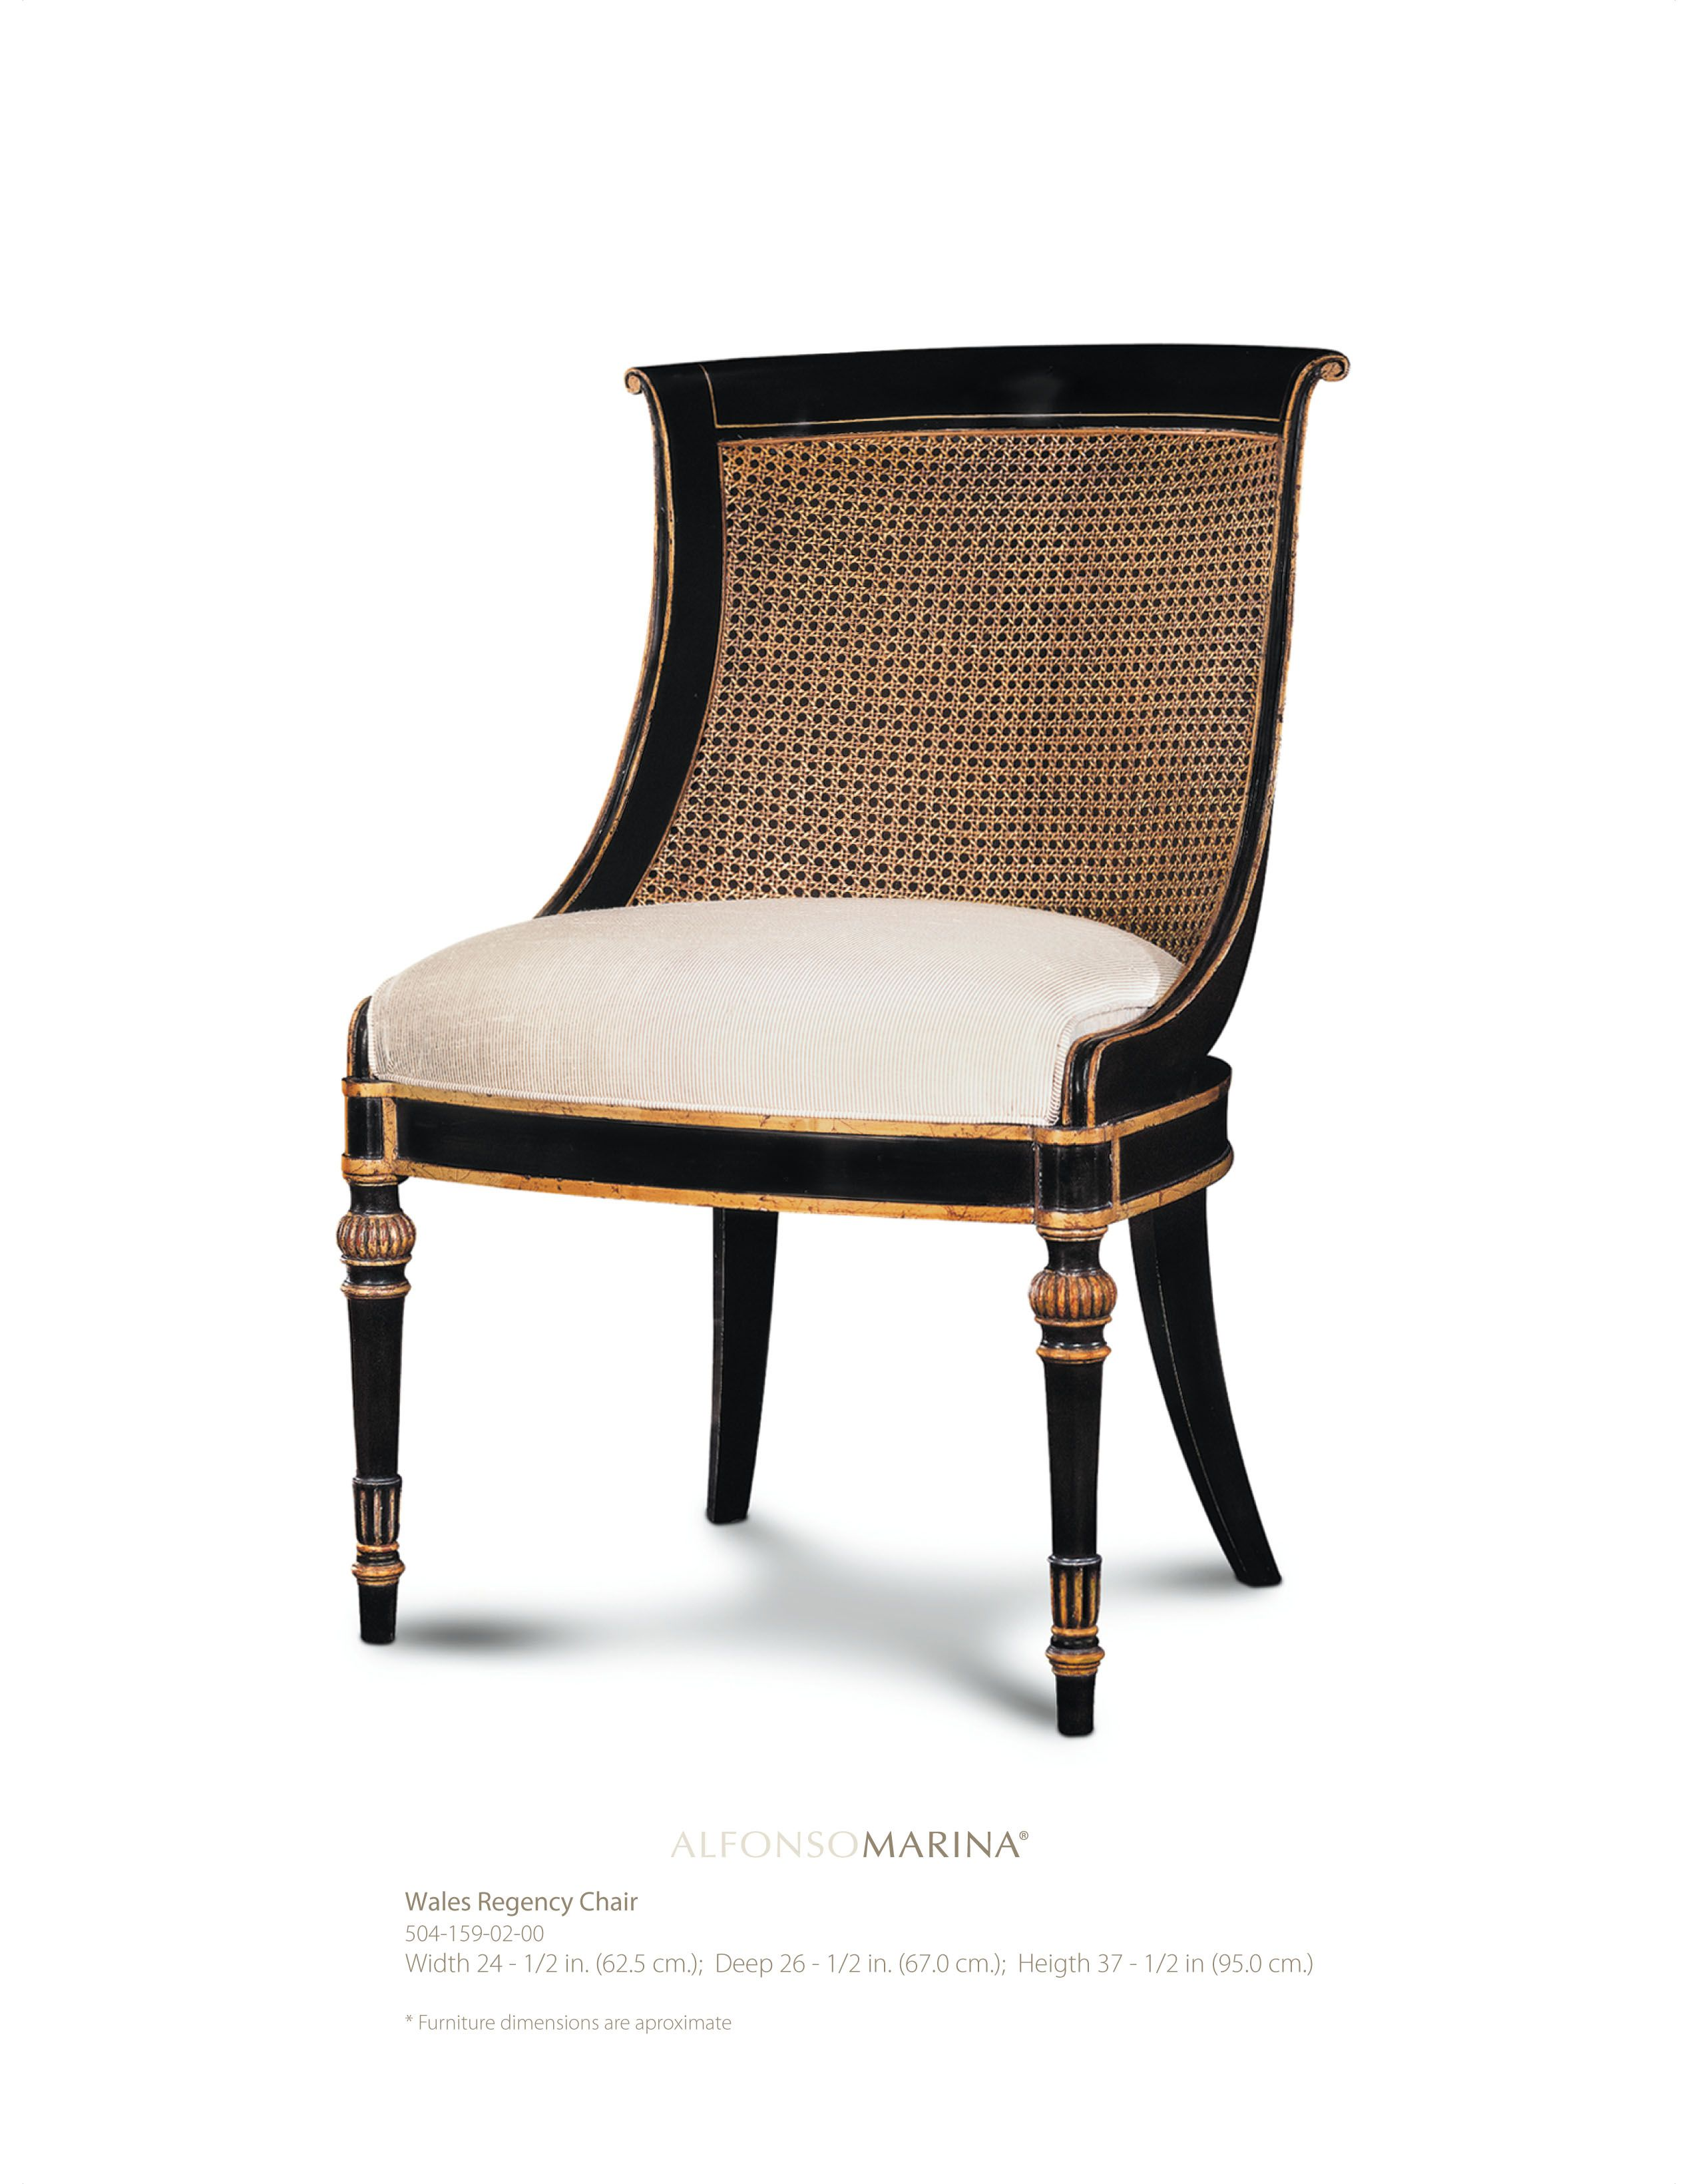 Wales Regency Chair By Alfonso Marina Ebanista Chairs